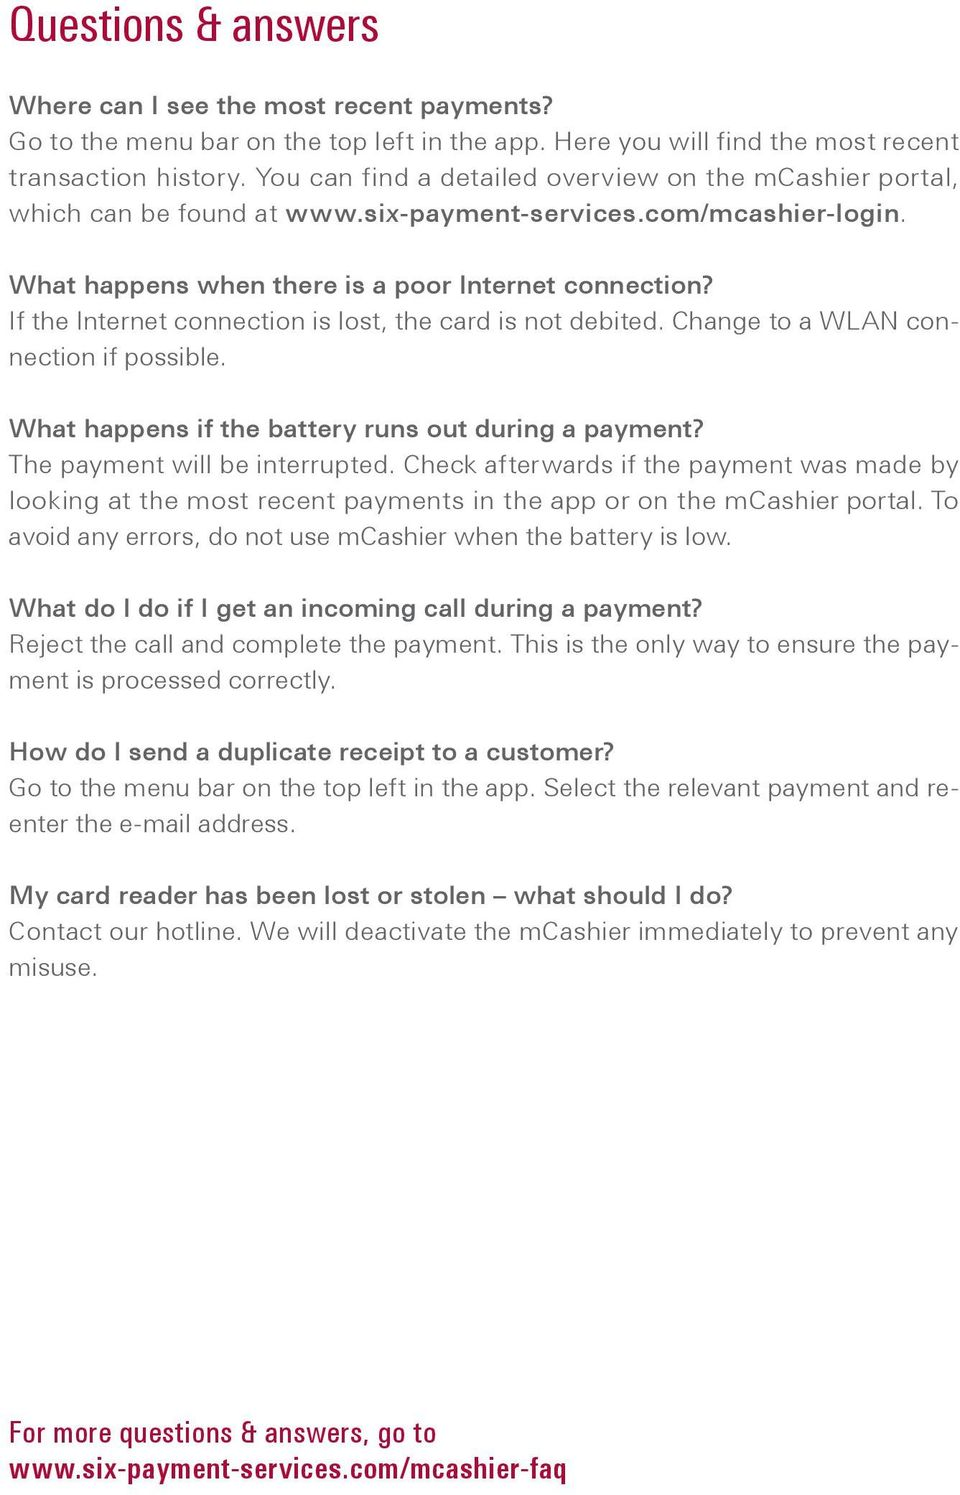 If the Internet connection is lost, the card is not debited. Change to a WLAN connection if possible. What happens if the battery runs out during a payment? The payment will be interrupted.